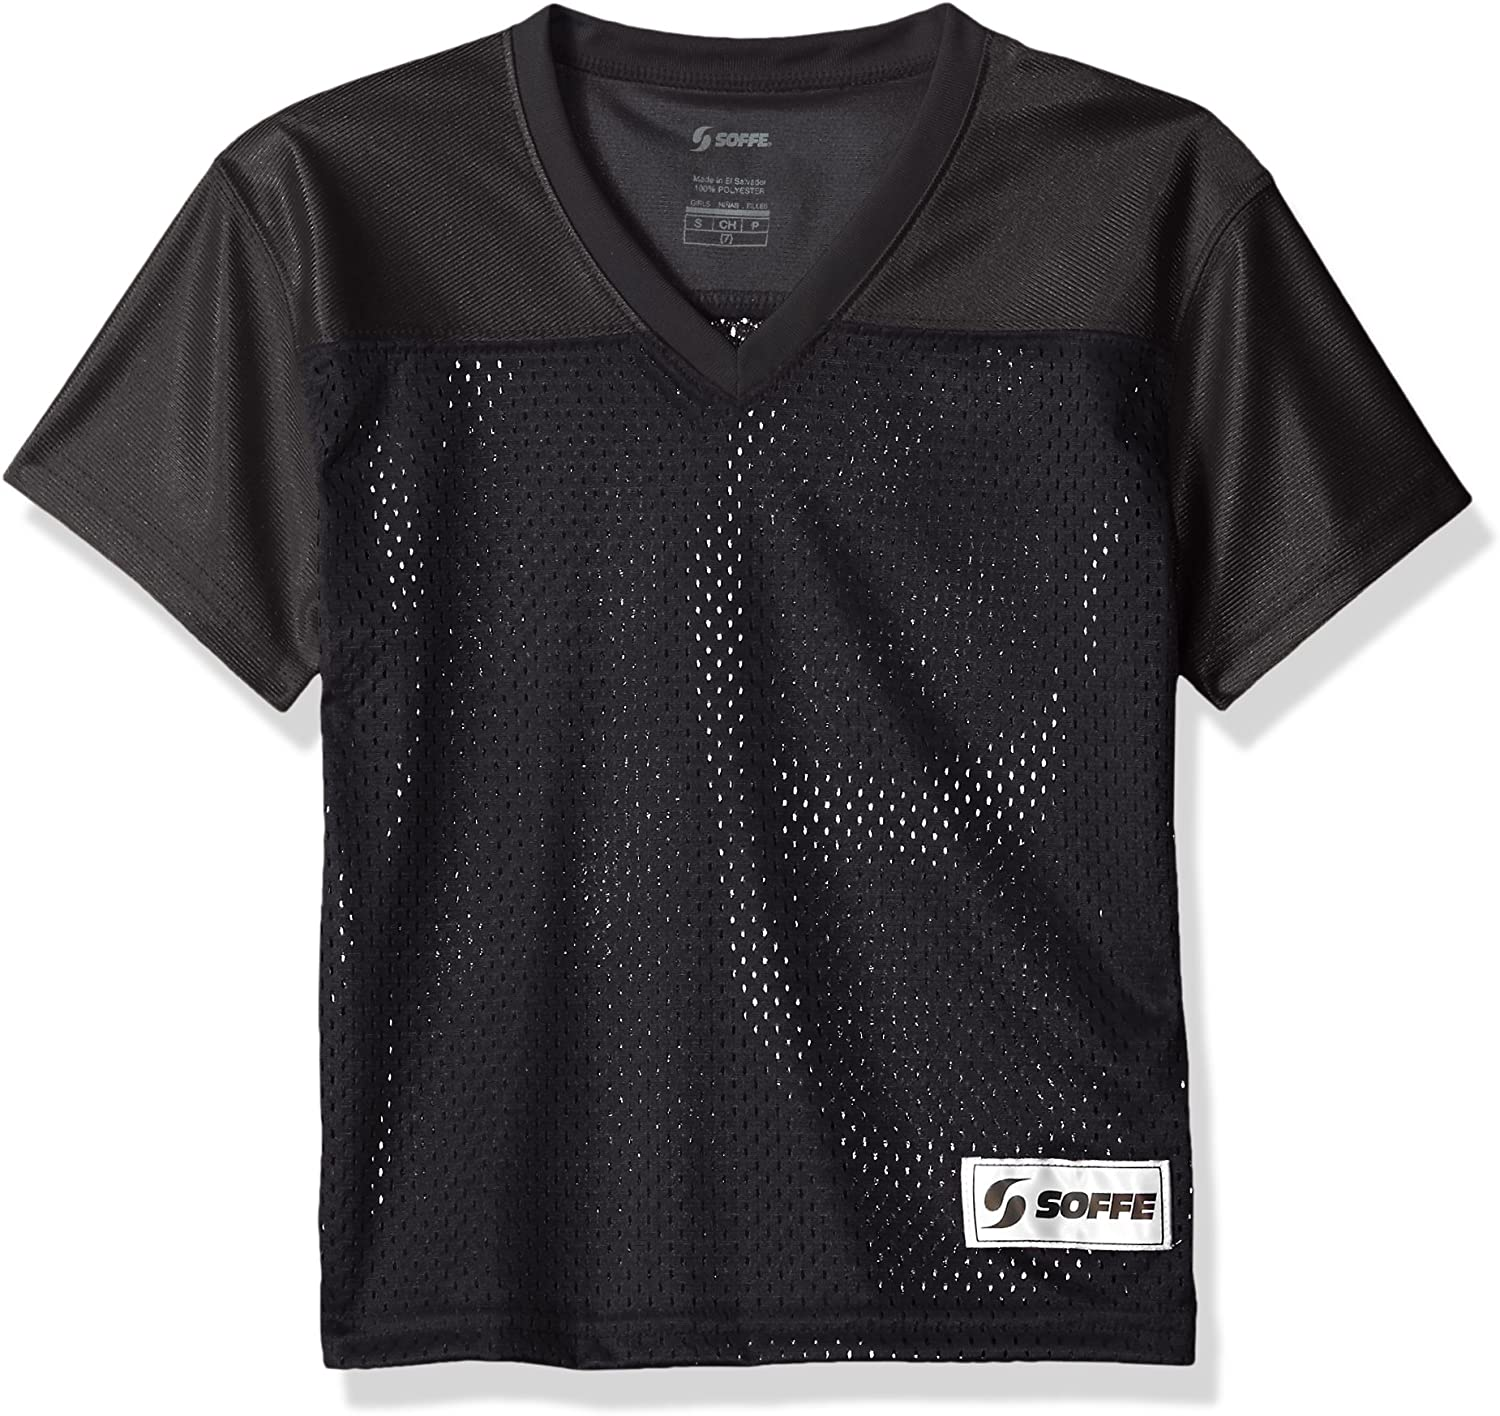 Soffe Girls Big Football Jersey